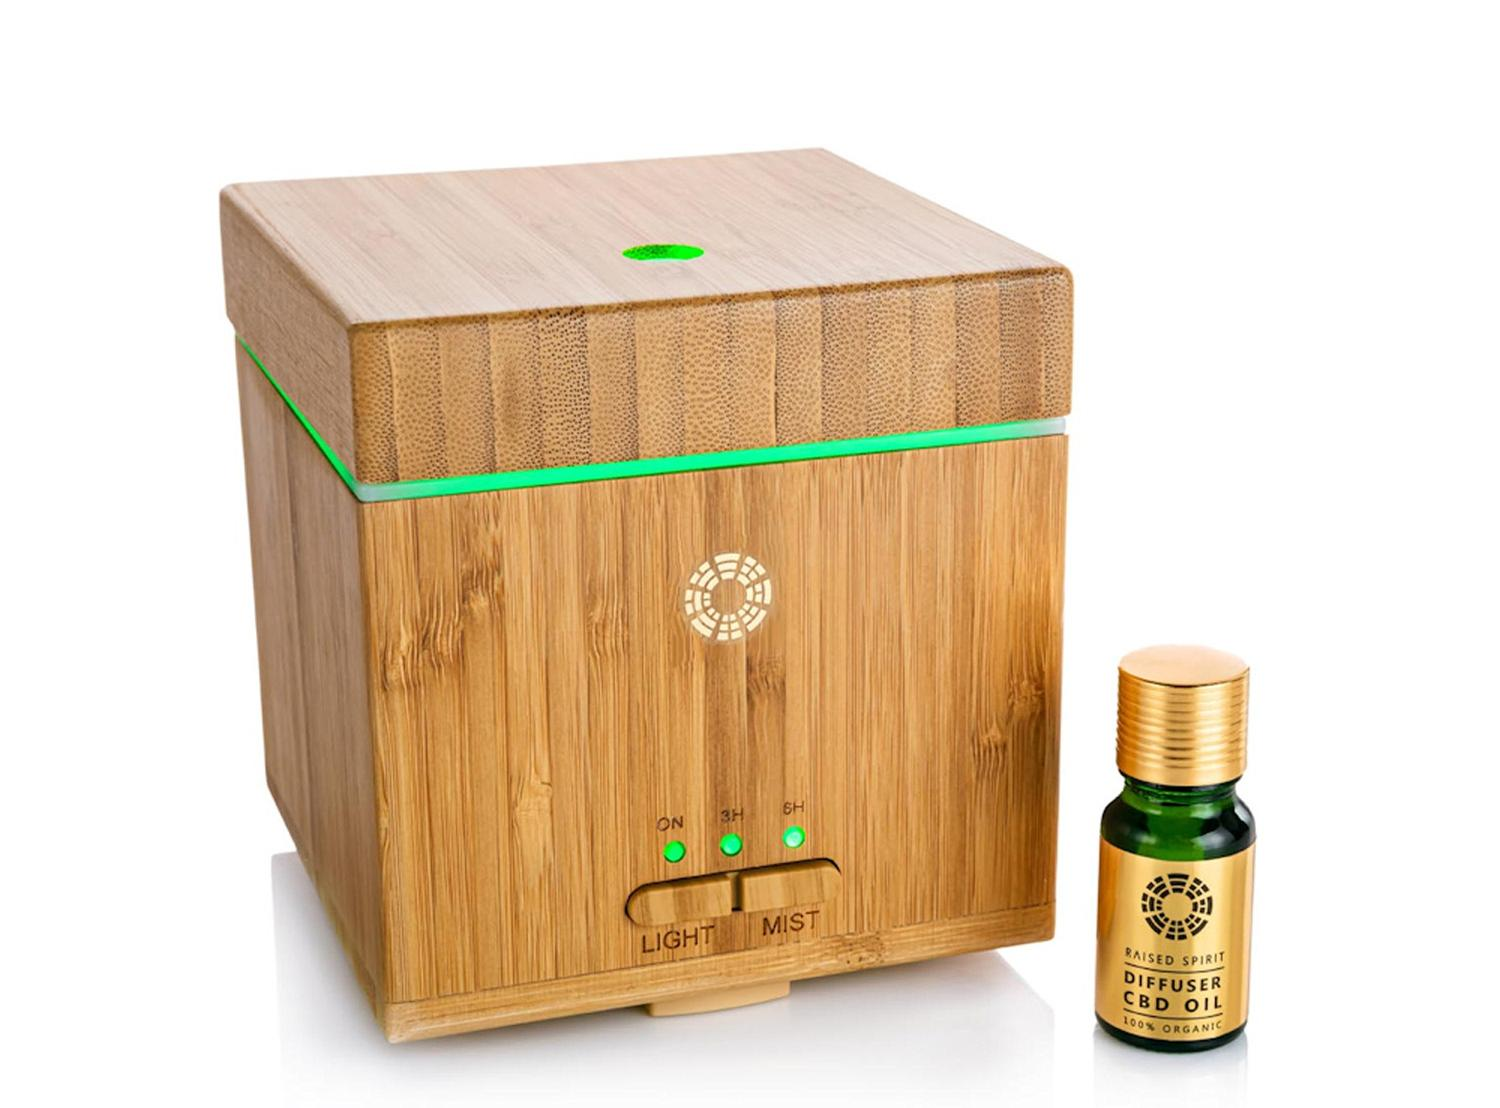 The diffuser has been developed to help provide a calming environment and improve overall physical and mental wellbeing / Raised Spirit